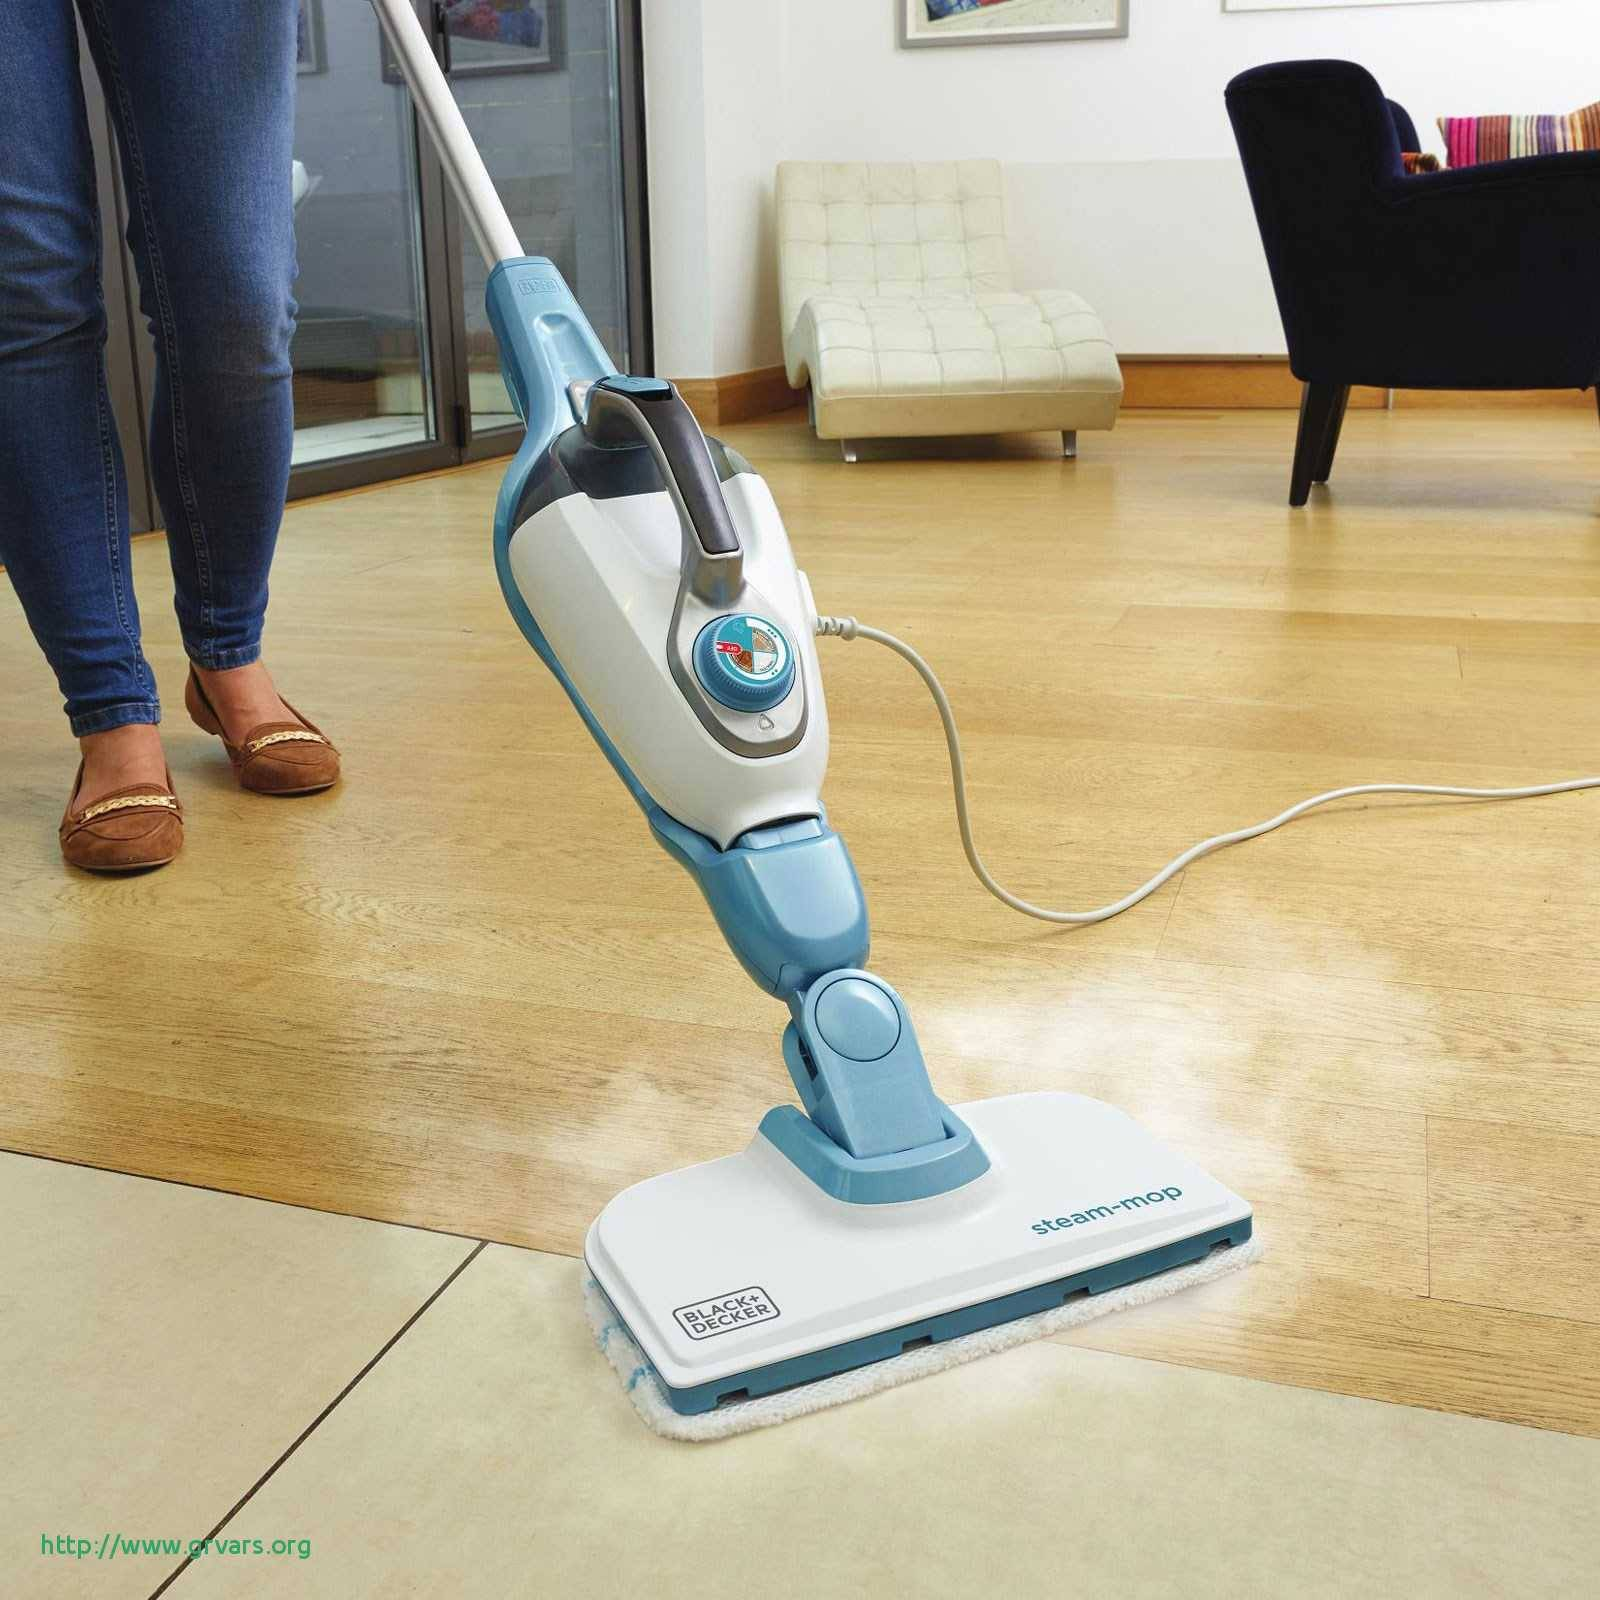 hardwood floor steam cleaner shark of hardwood floor steam mop steam hard floor cleaners reviews unique with hardwood floor steam mop steam hard floor cleaners reviews unique black decker fs